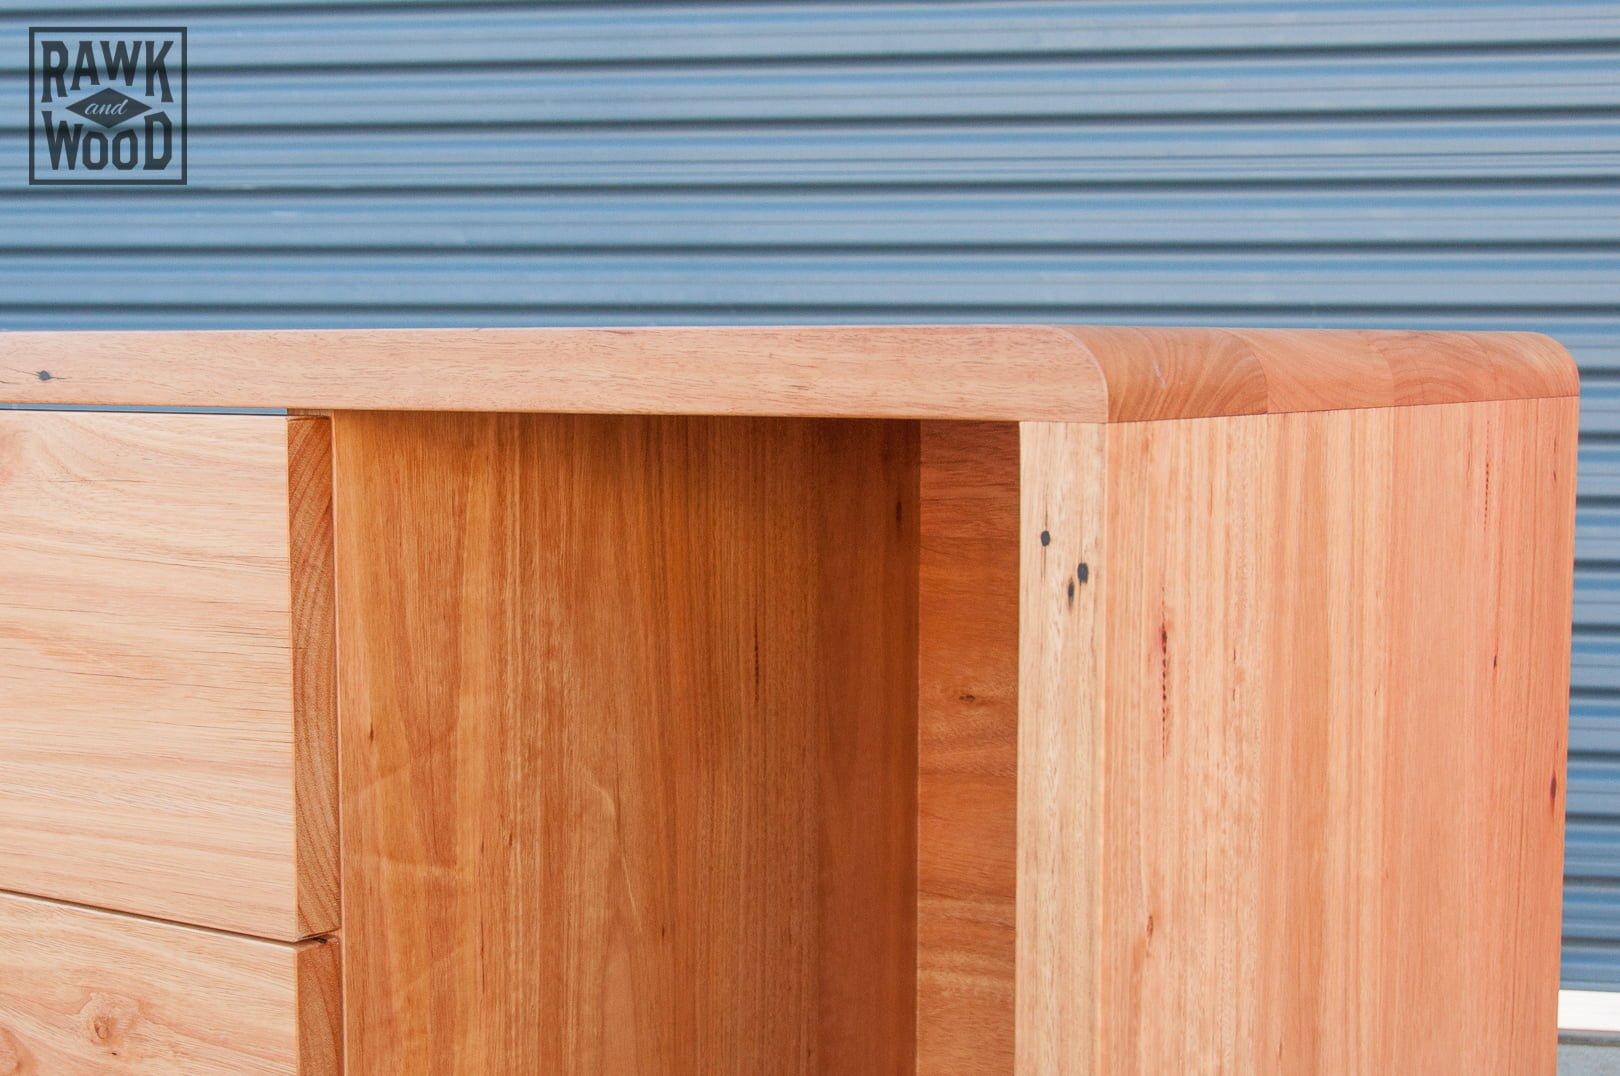 recycled-timber-baby-change-table, custom-made in Melbourne by Rawk and Wood